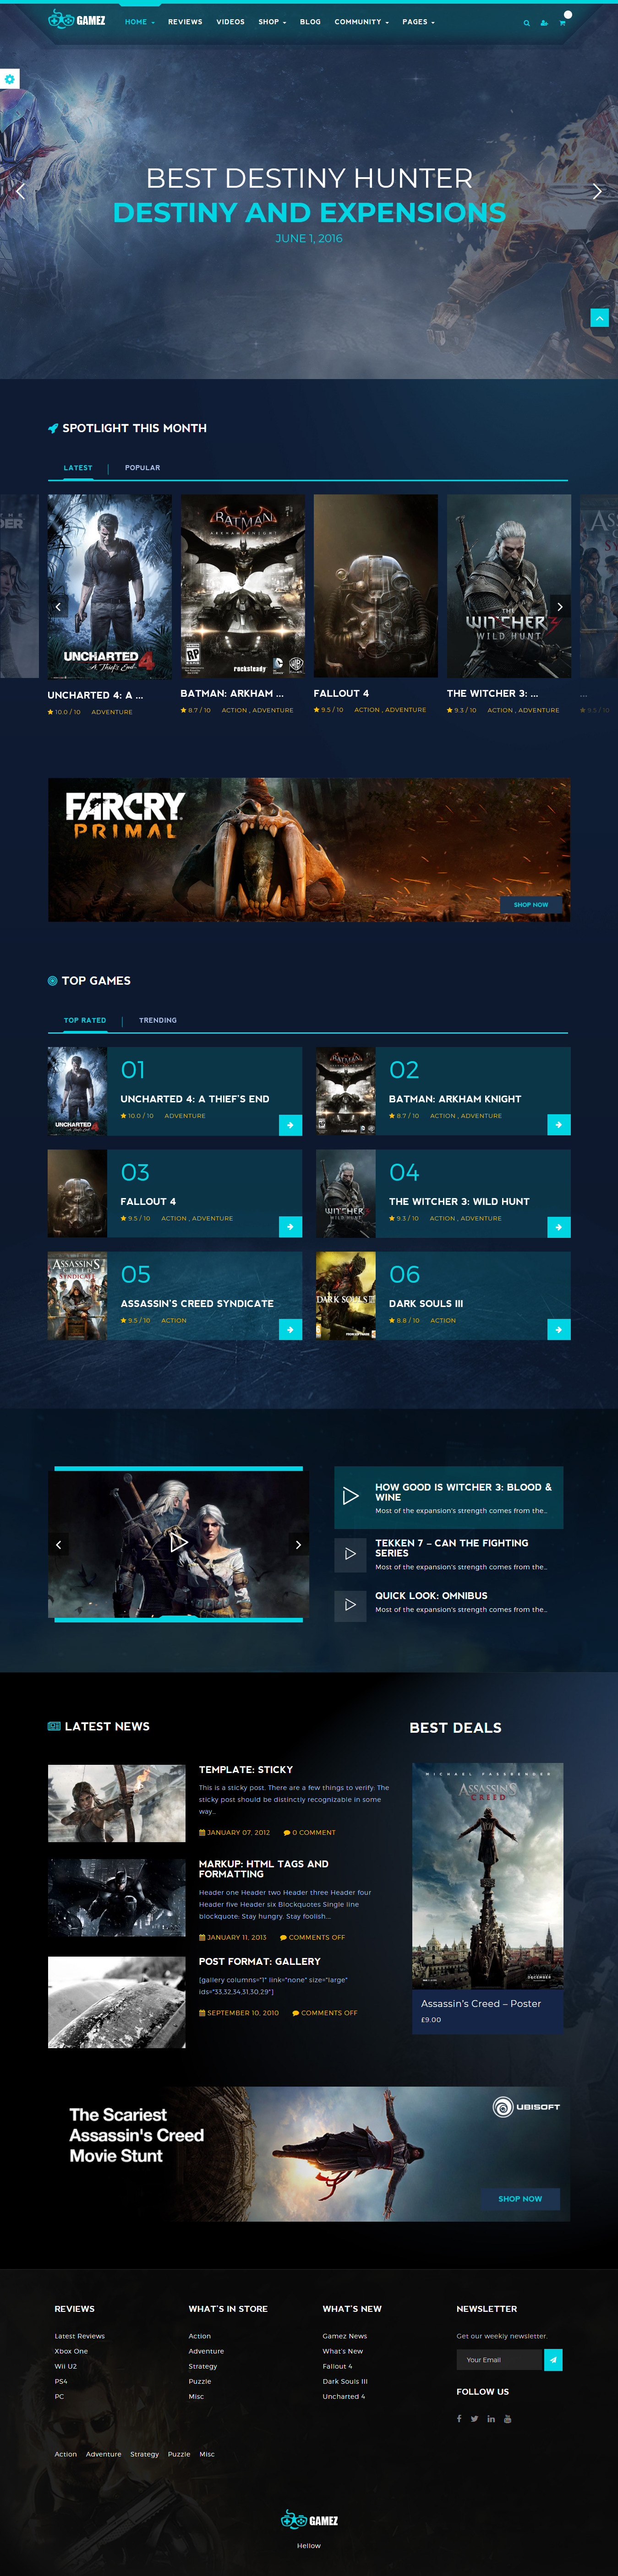 gamez best premium gaming wordpress theme - 10+ Best Premium Gaming WordPress Themes